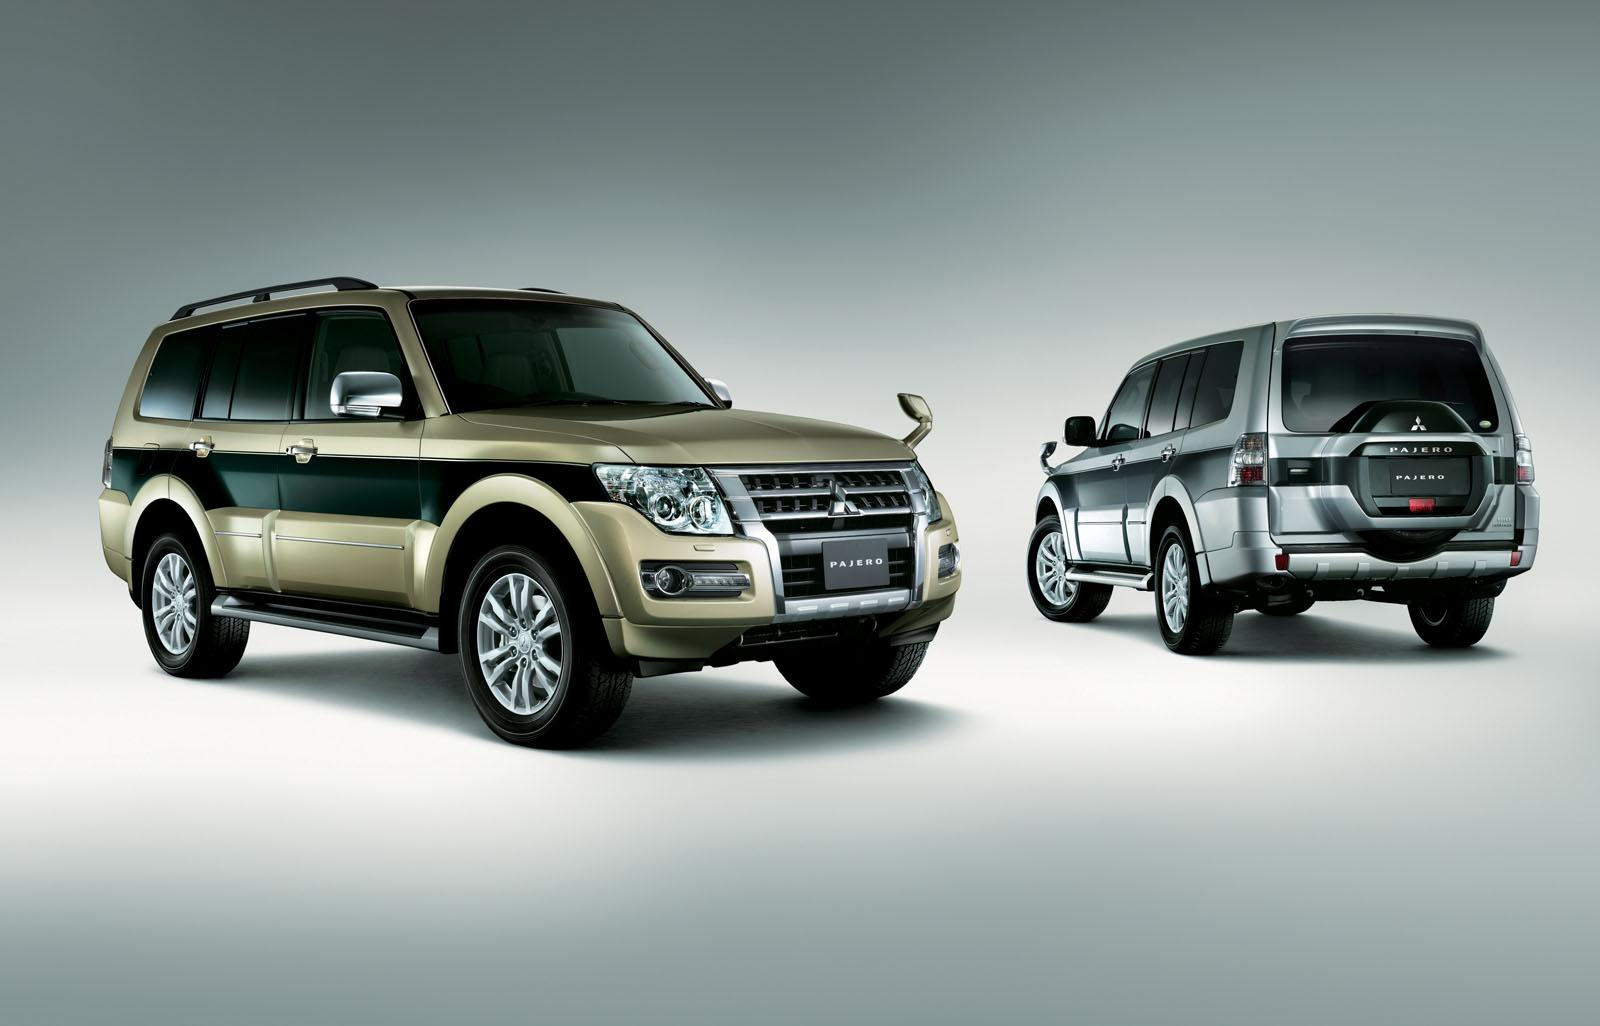 2014 Mitsubishi Pajero Sport Facelift Launched In Australia | Autos